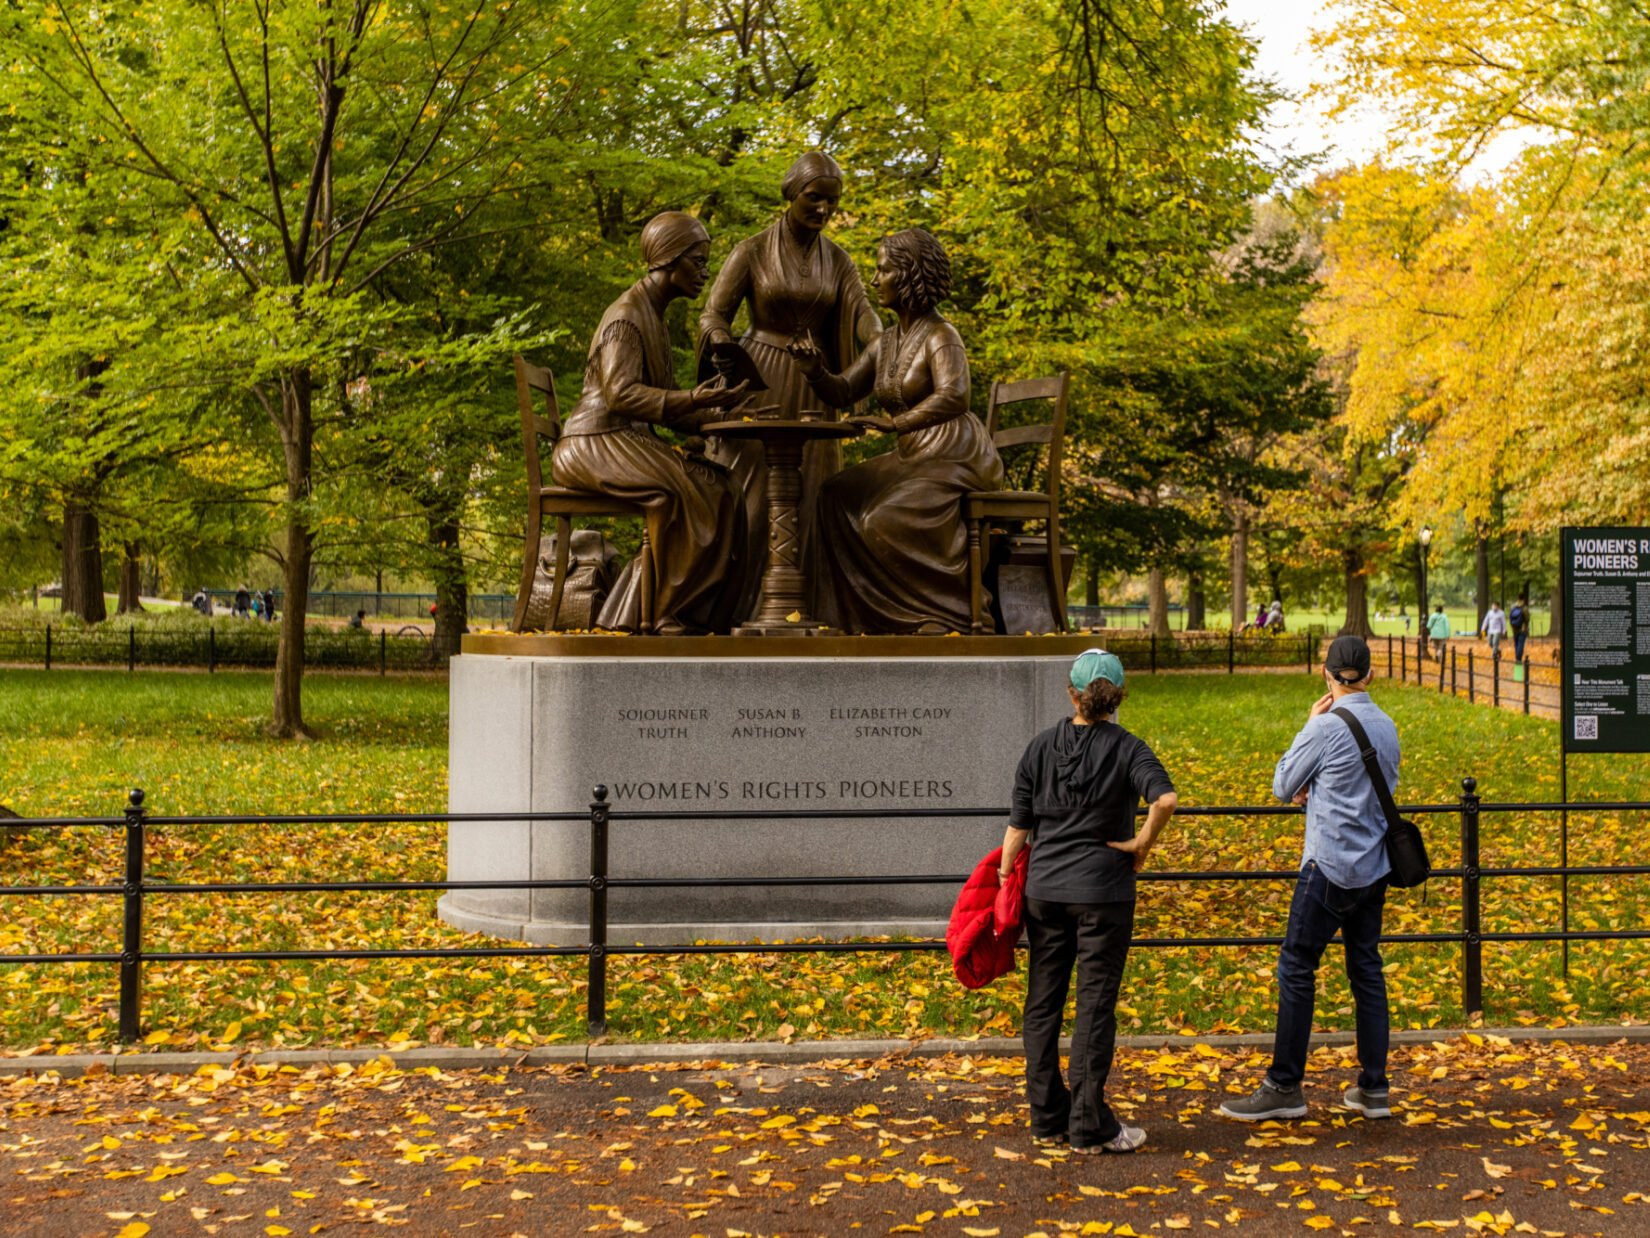 The monument pictured in early autumn